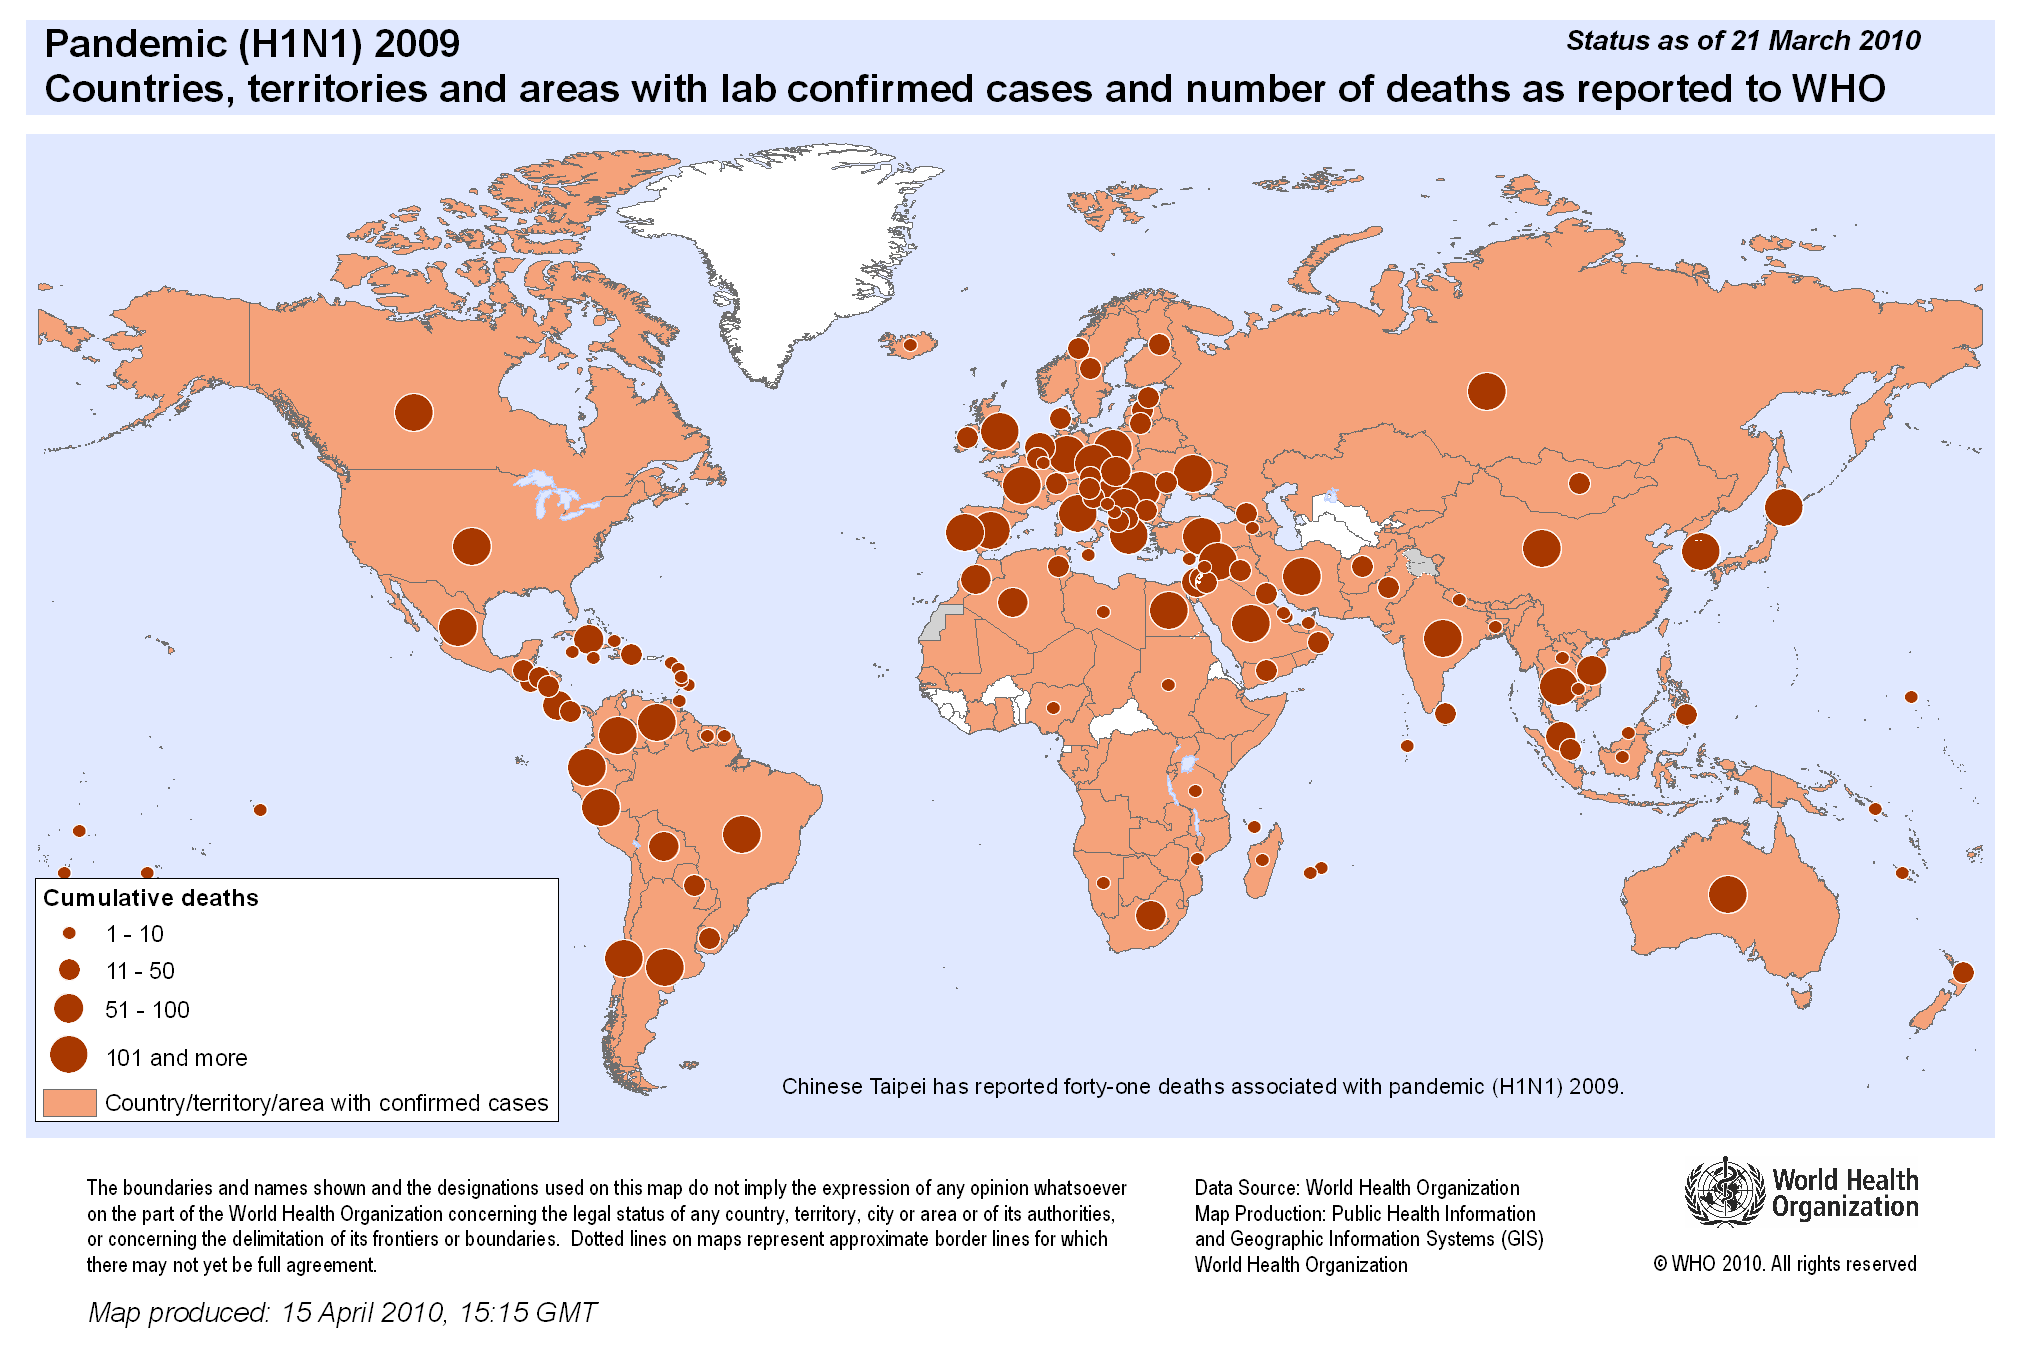 World : Pandemic (H1N1) 2009 affected countries and deaths, status as of 21-Mar-2010